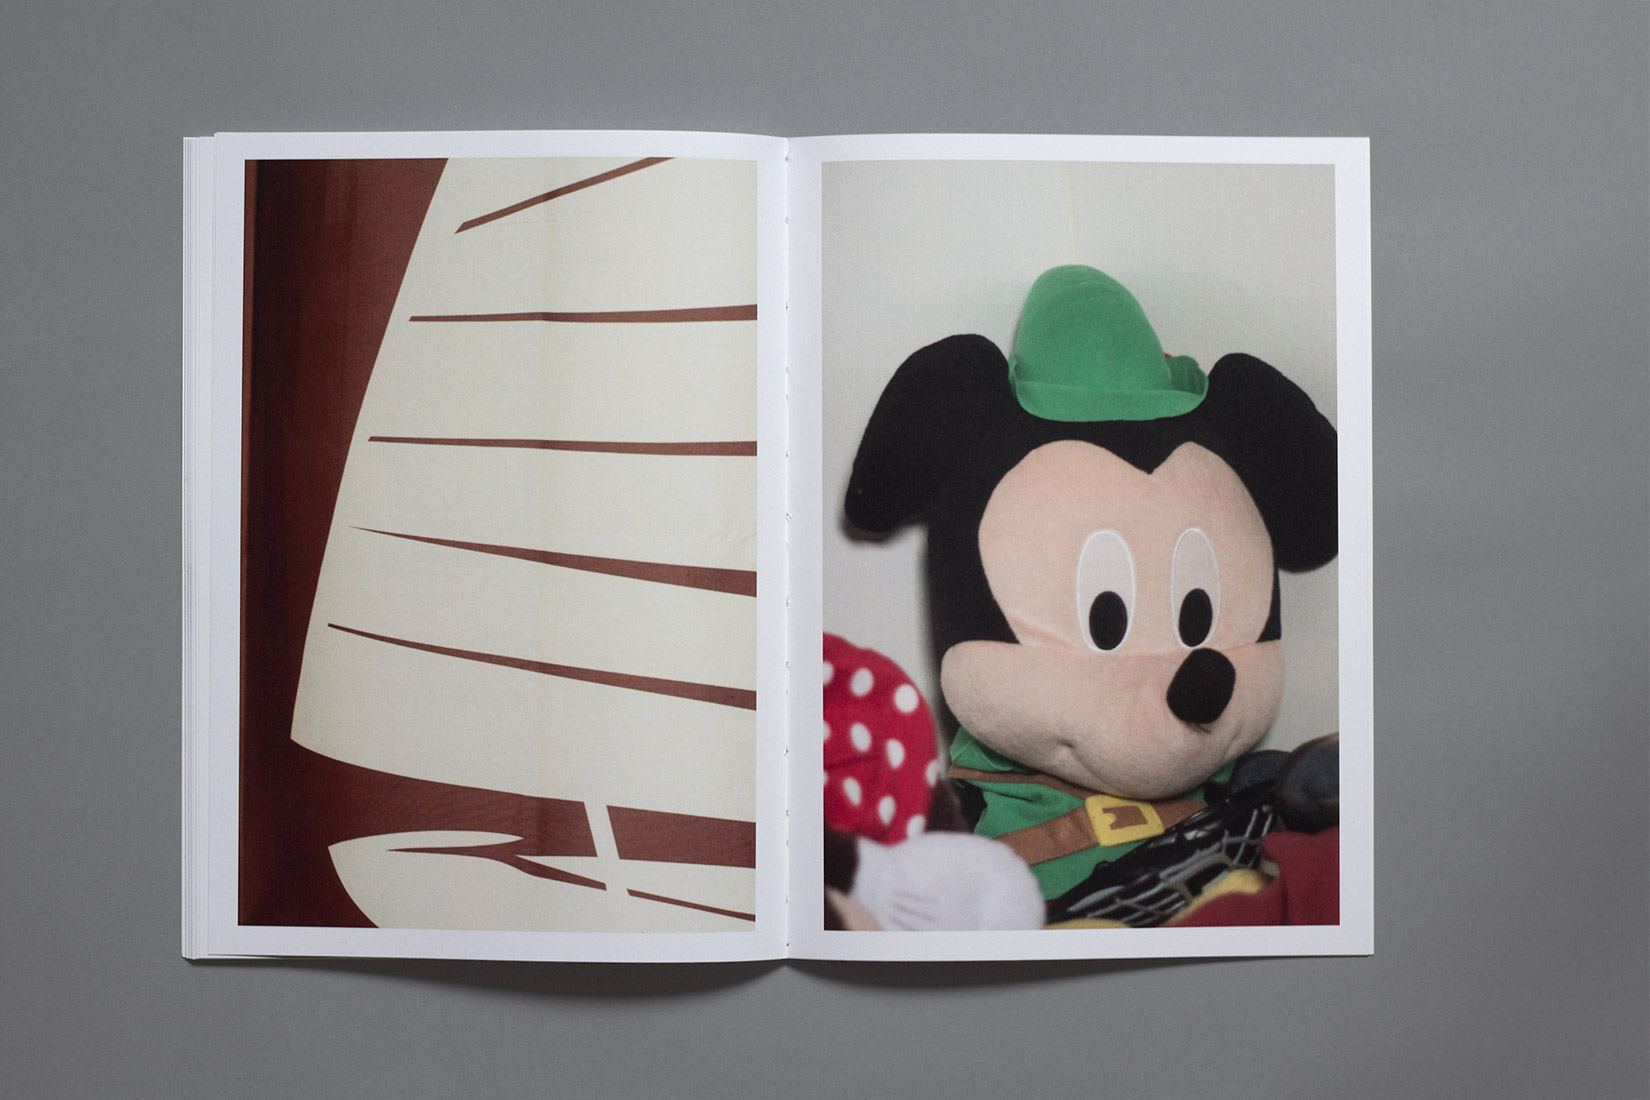 Les Brenets - Camping, child's room, Mickey Mouse, book, photography